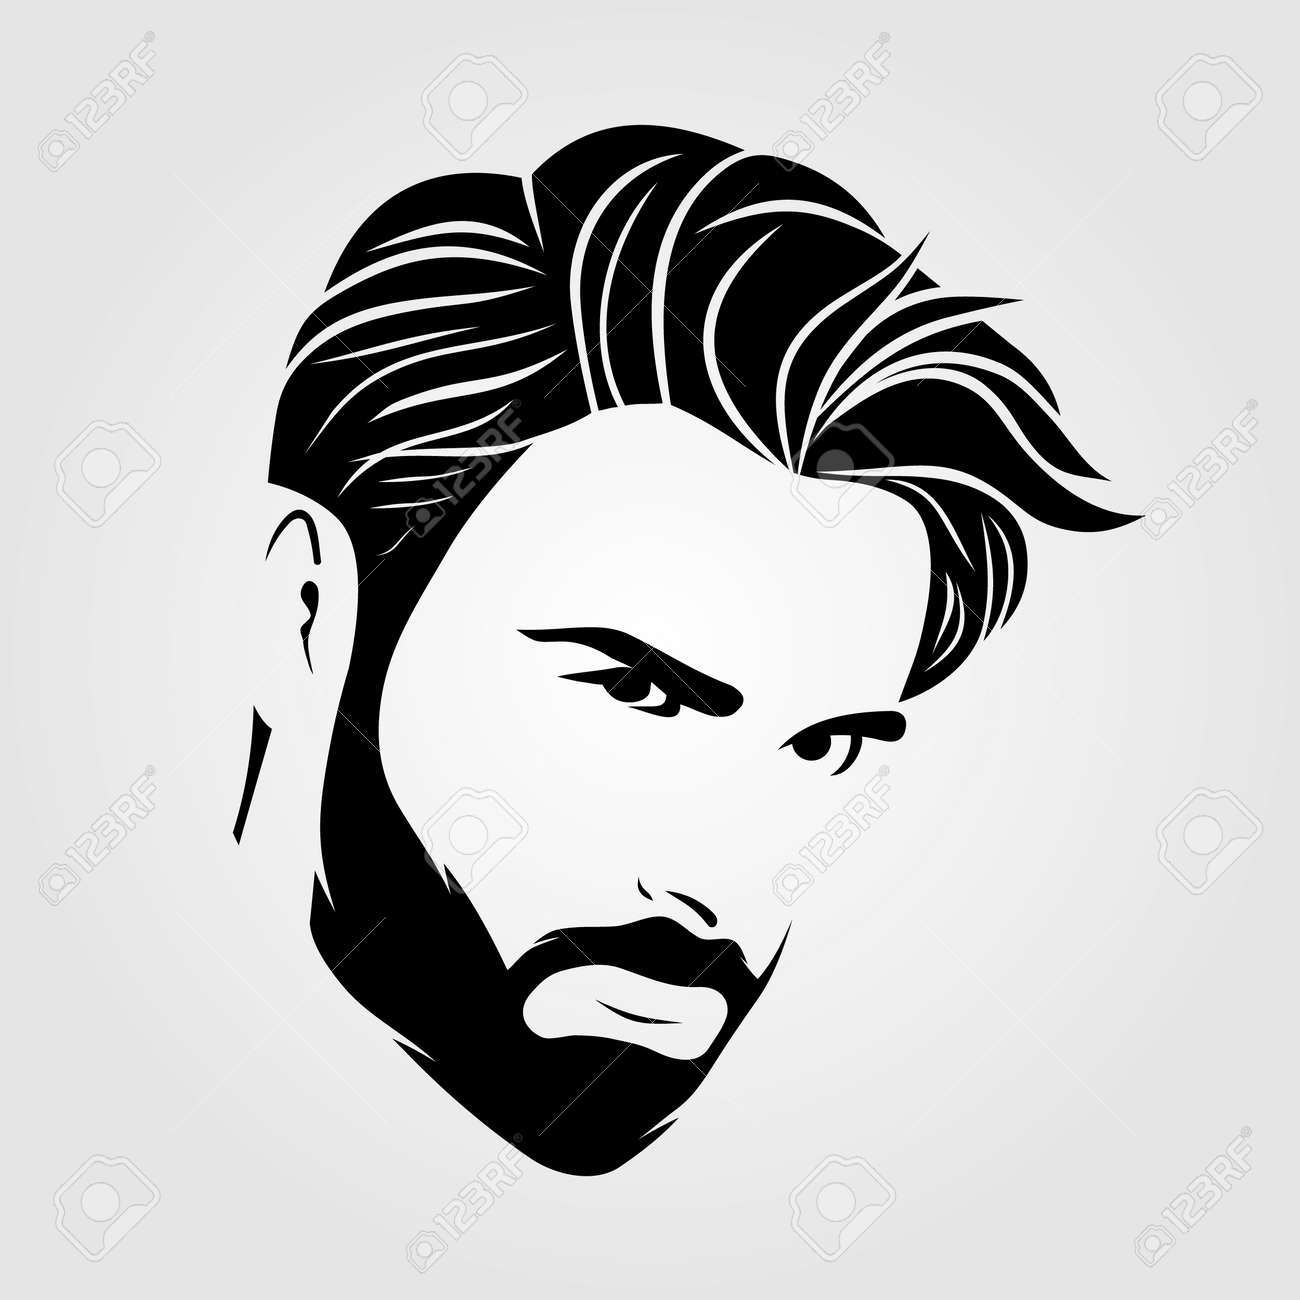 Bearded men, hipster face icon isolated. Vector - 169447762